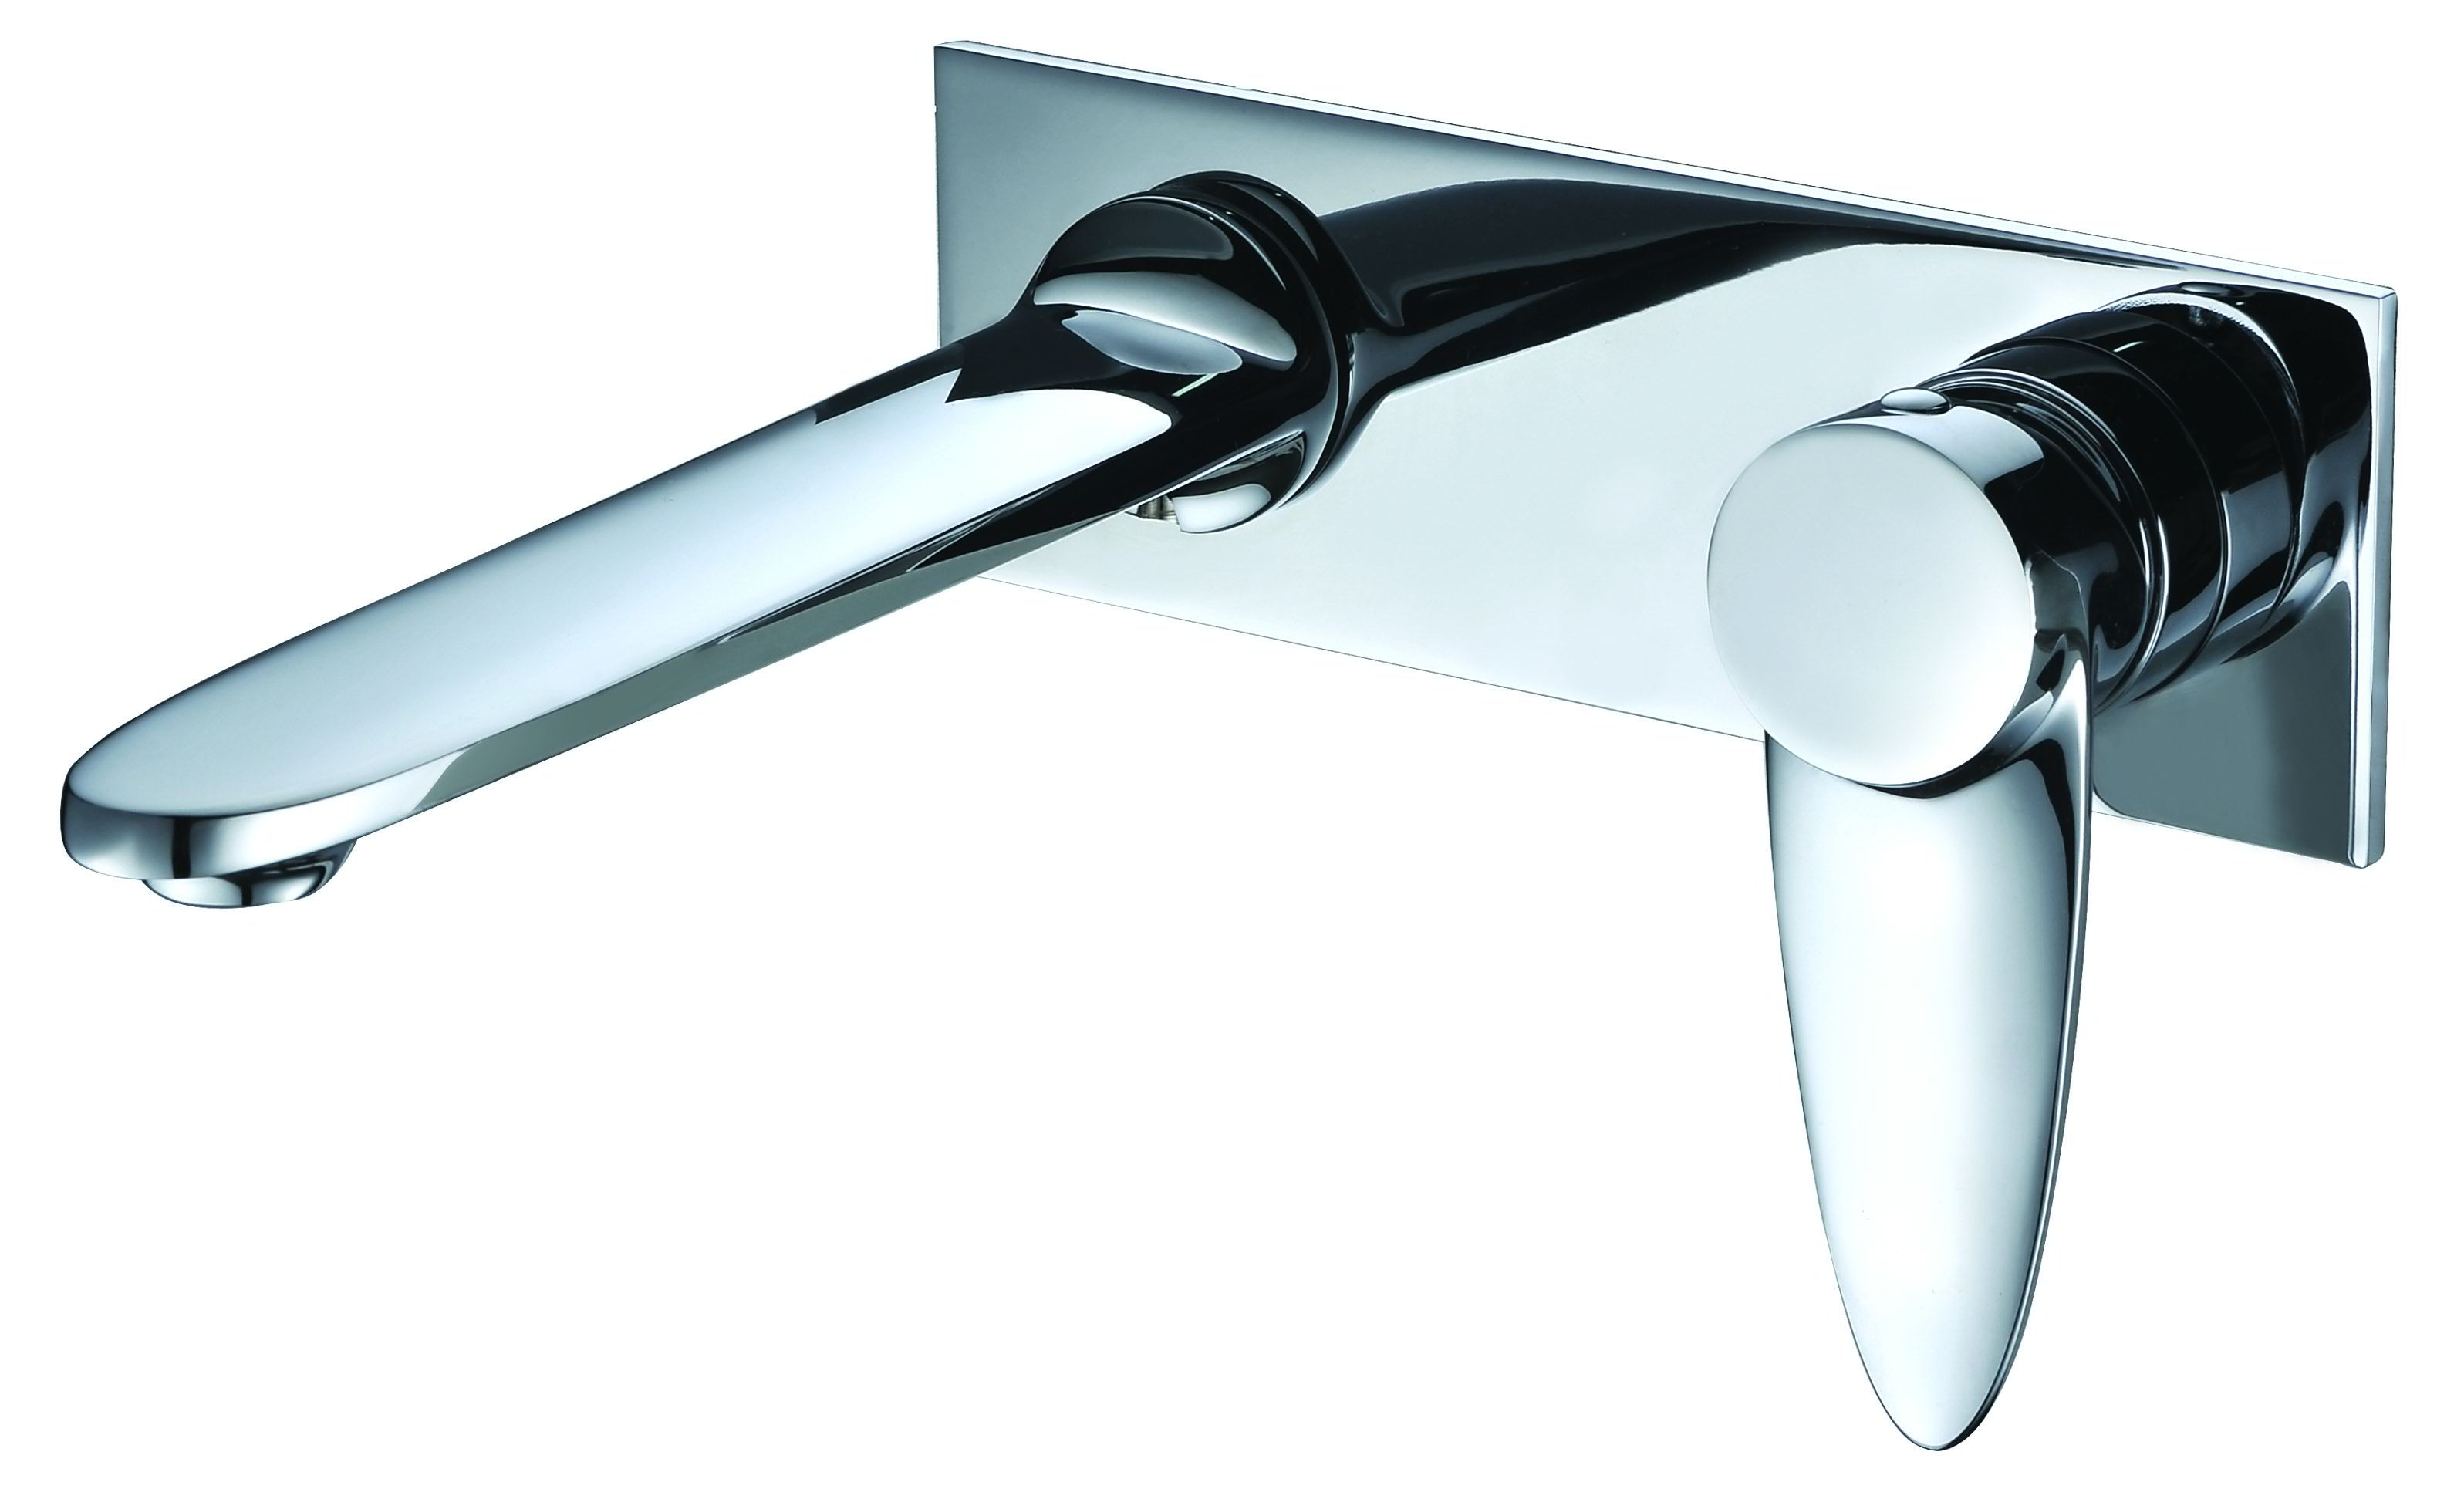 ALFI Brand AB1772 Brushed Nickel or Polished Chrome Wall Mounted Modern Bathroom Faucet